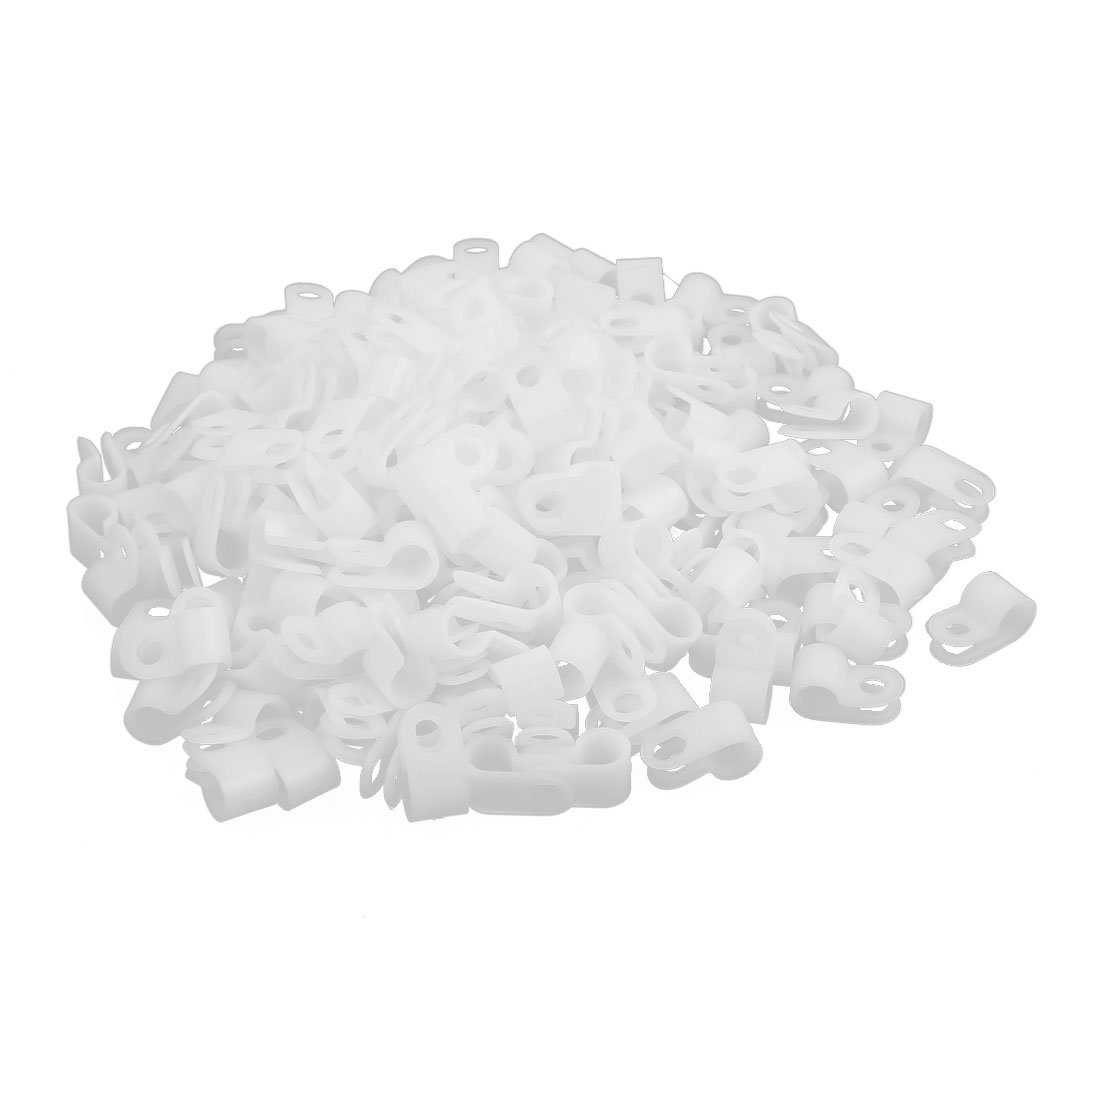 Aexit 200Pcs Off-White Nylon R-Type Cable Clamp 1/4' for Home Automotive Marine Office and More